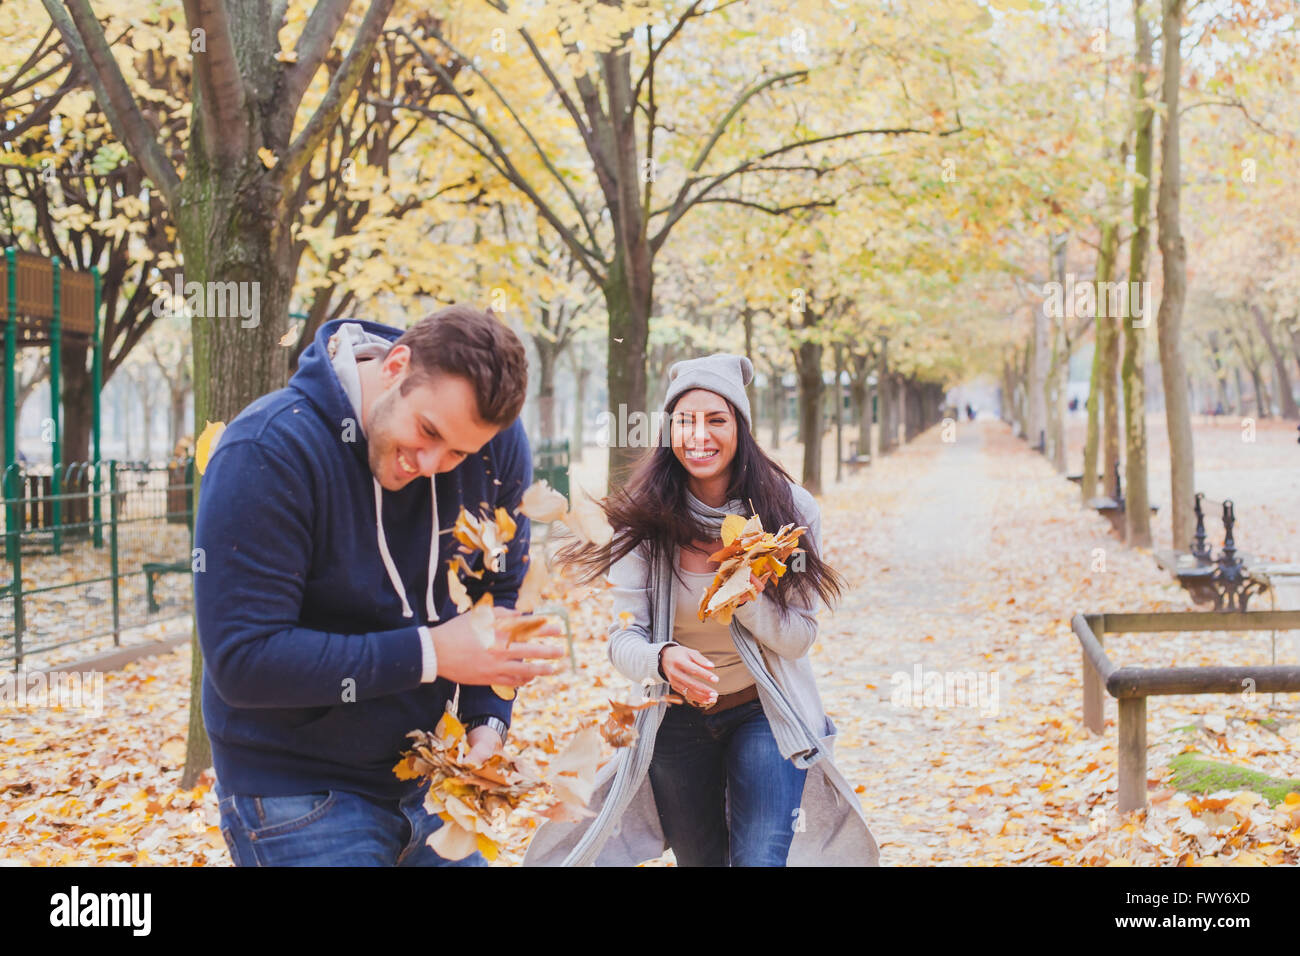 happy young couple playing and laughing together in autumn park Stock Photo